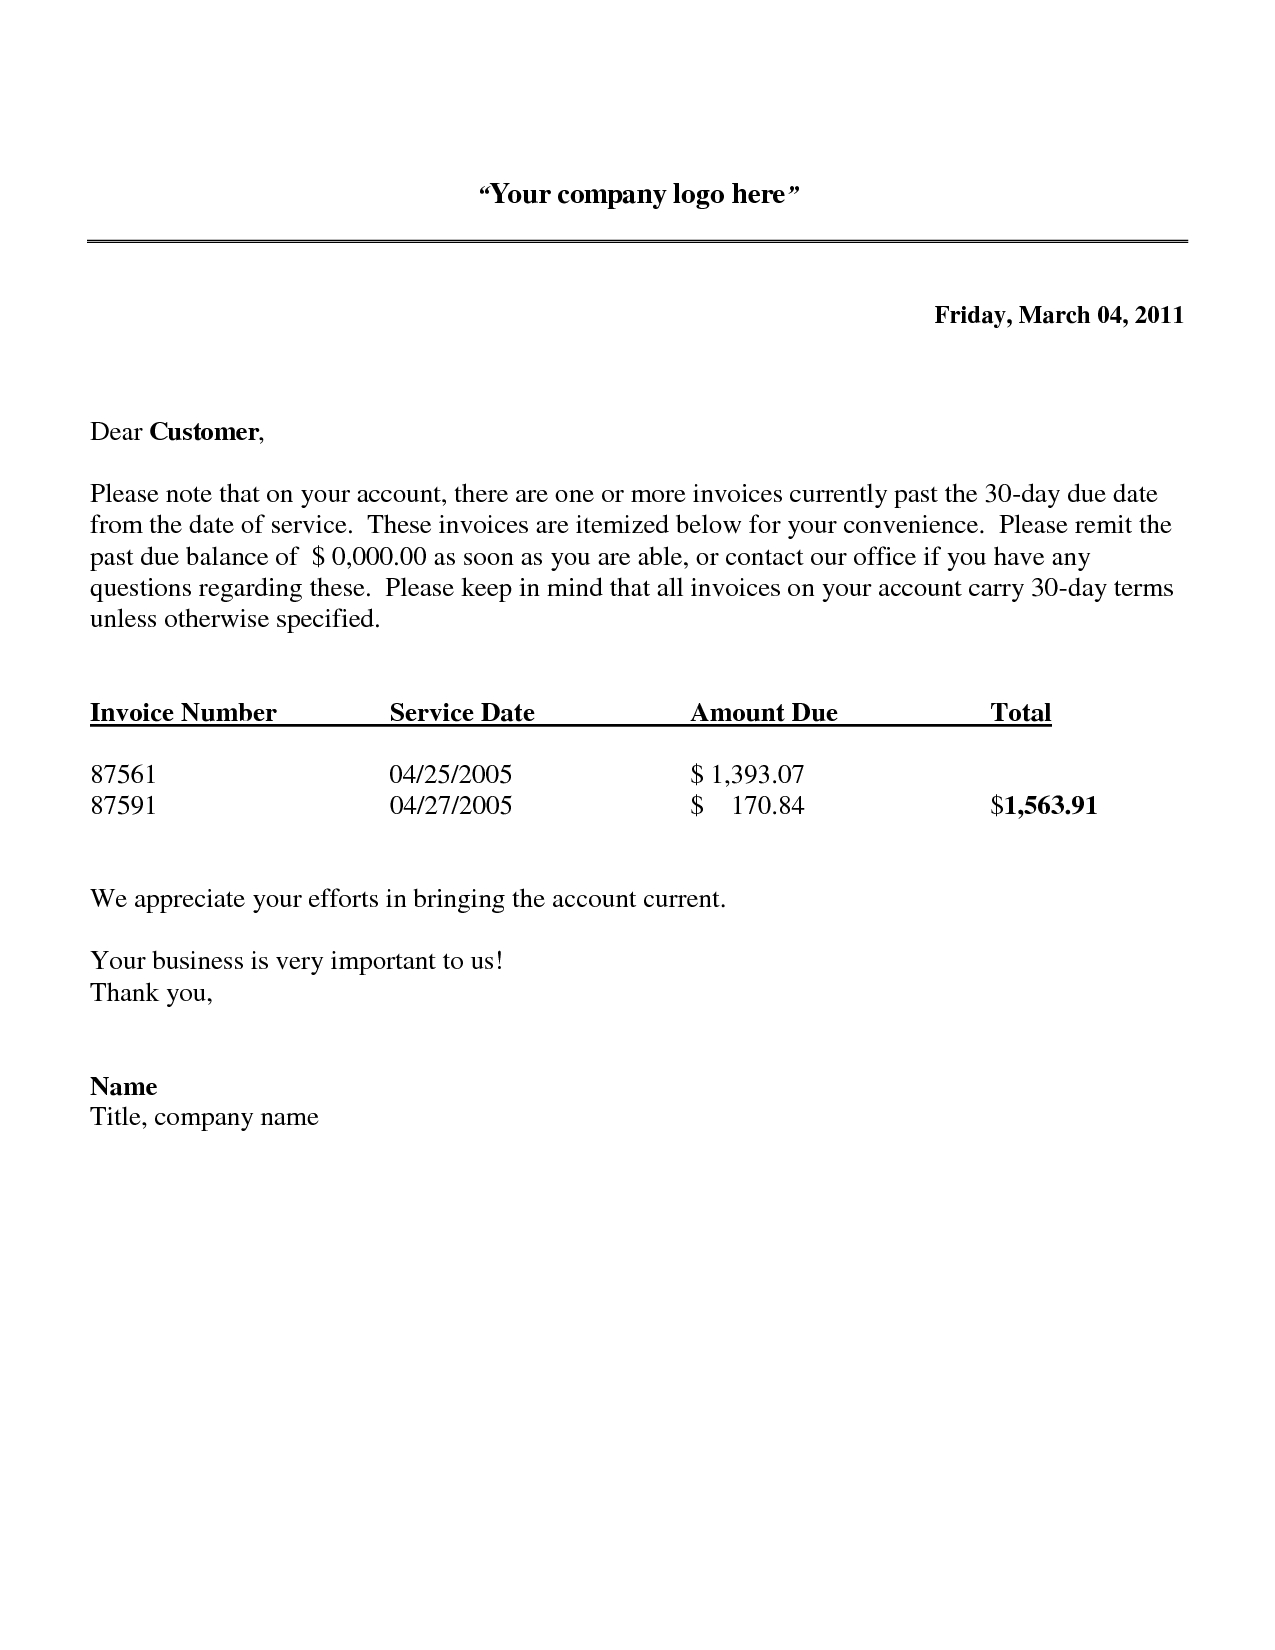 e mail letter standard business letter format sample past due invoice collection letter